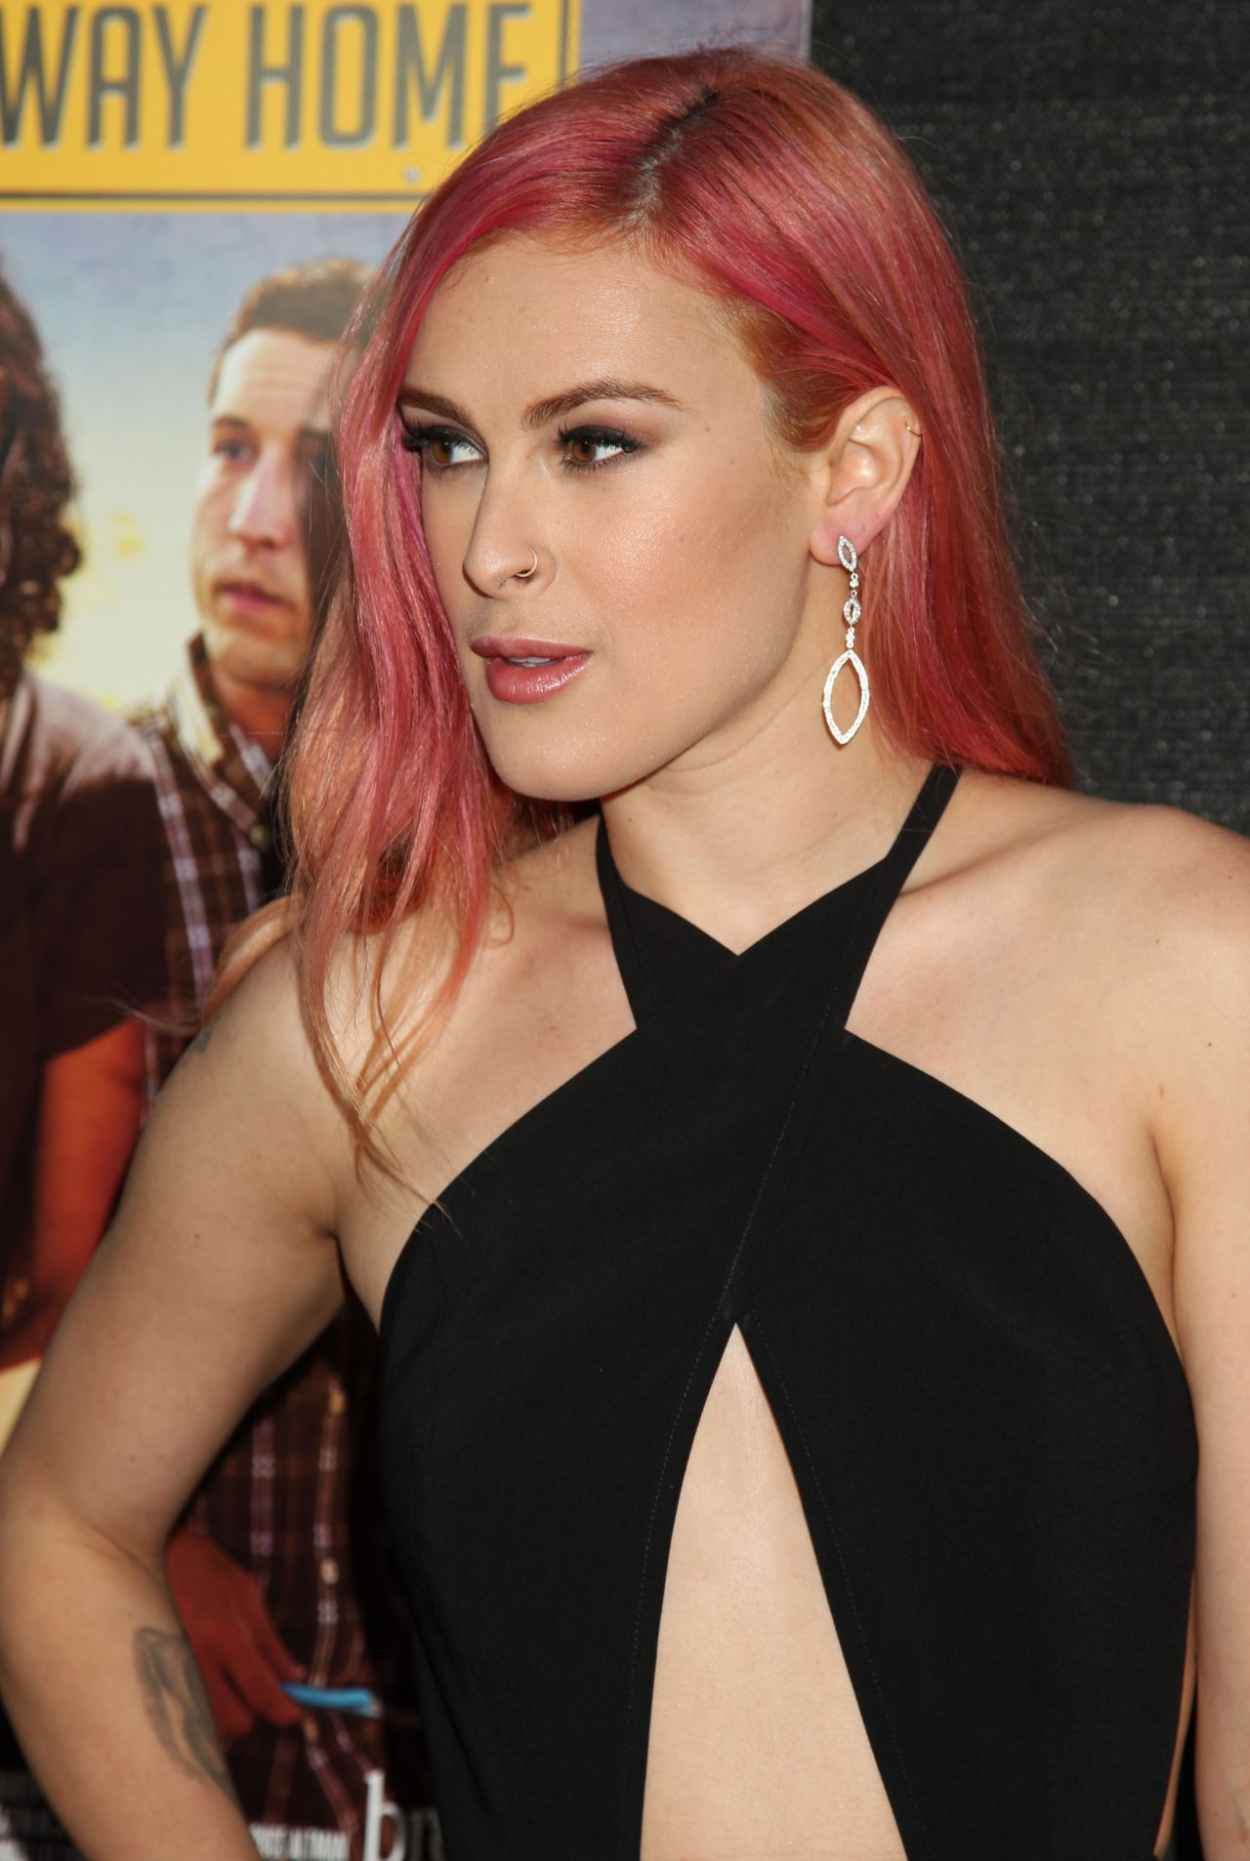 Rumer Willis - The Odd Way Home Premiere in Hollywood-1